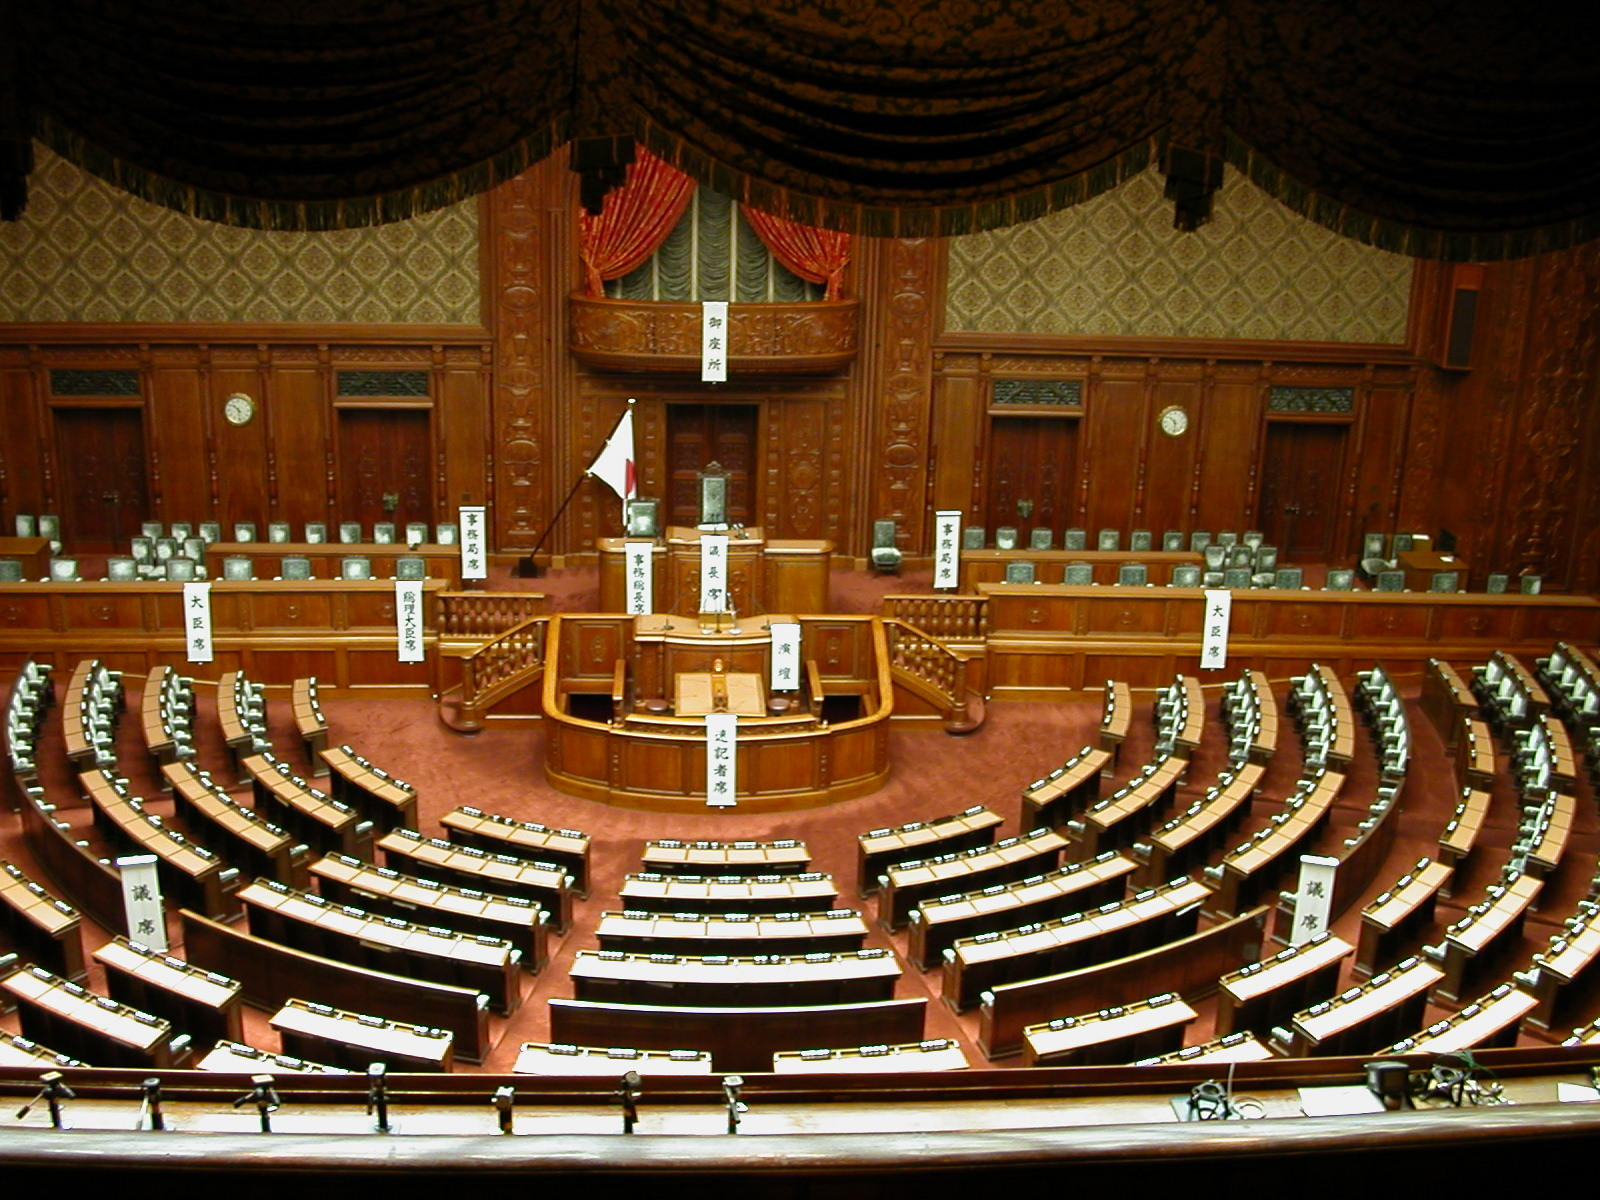 衆議院 - House of Representatives (Japan)